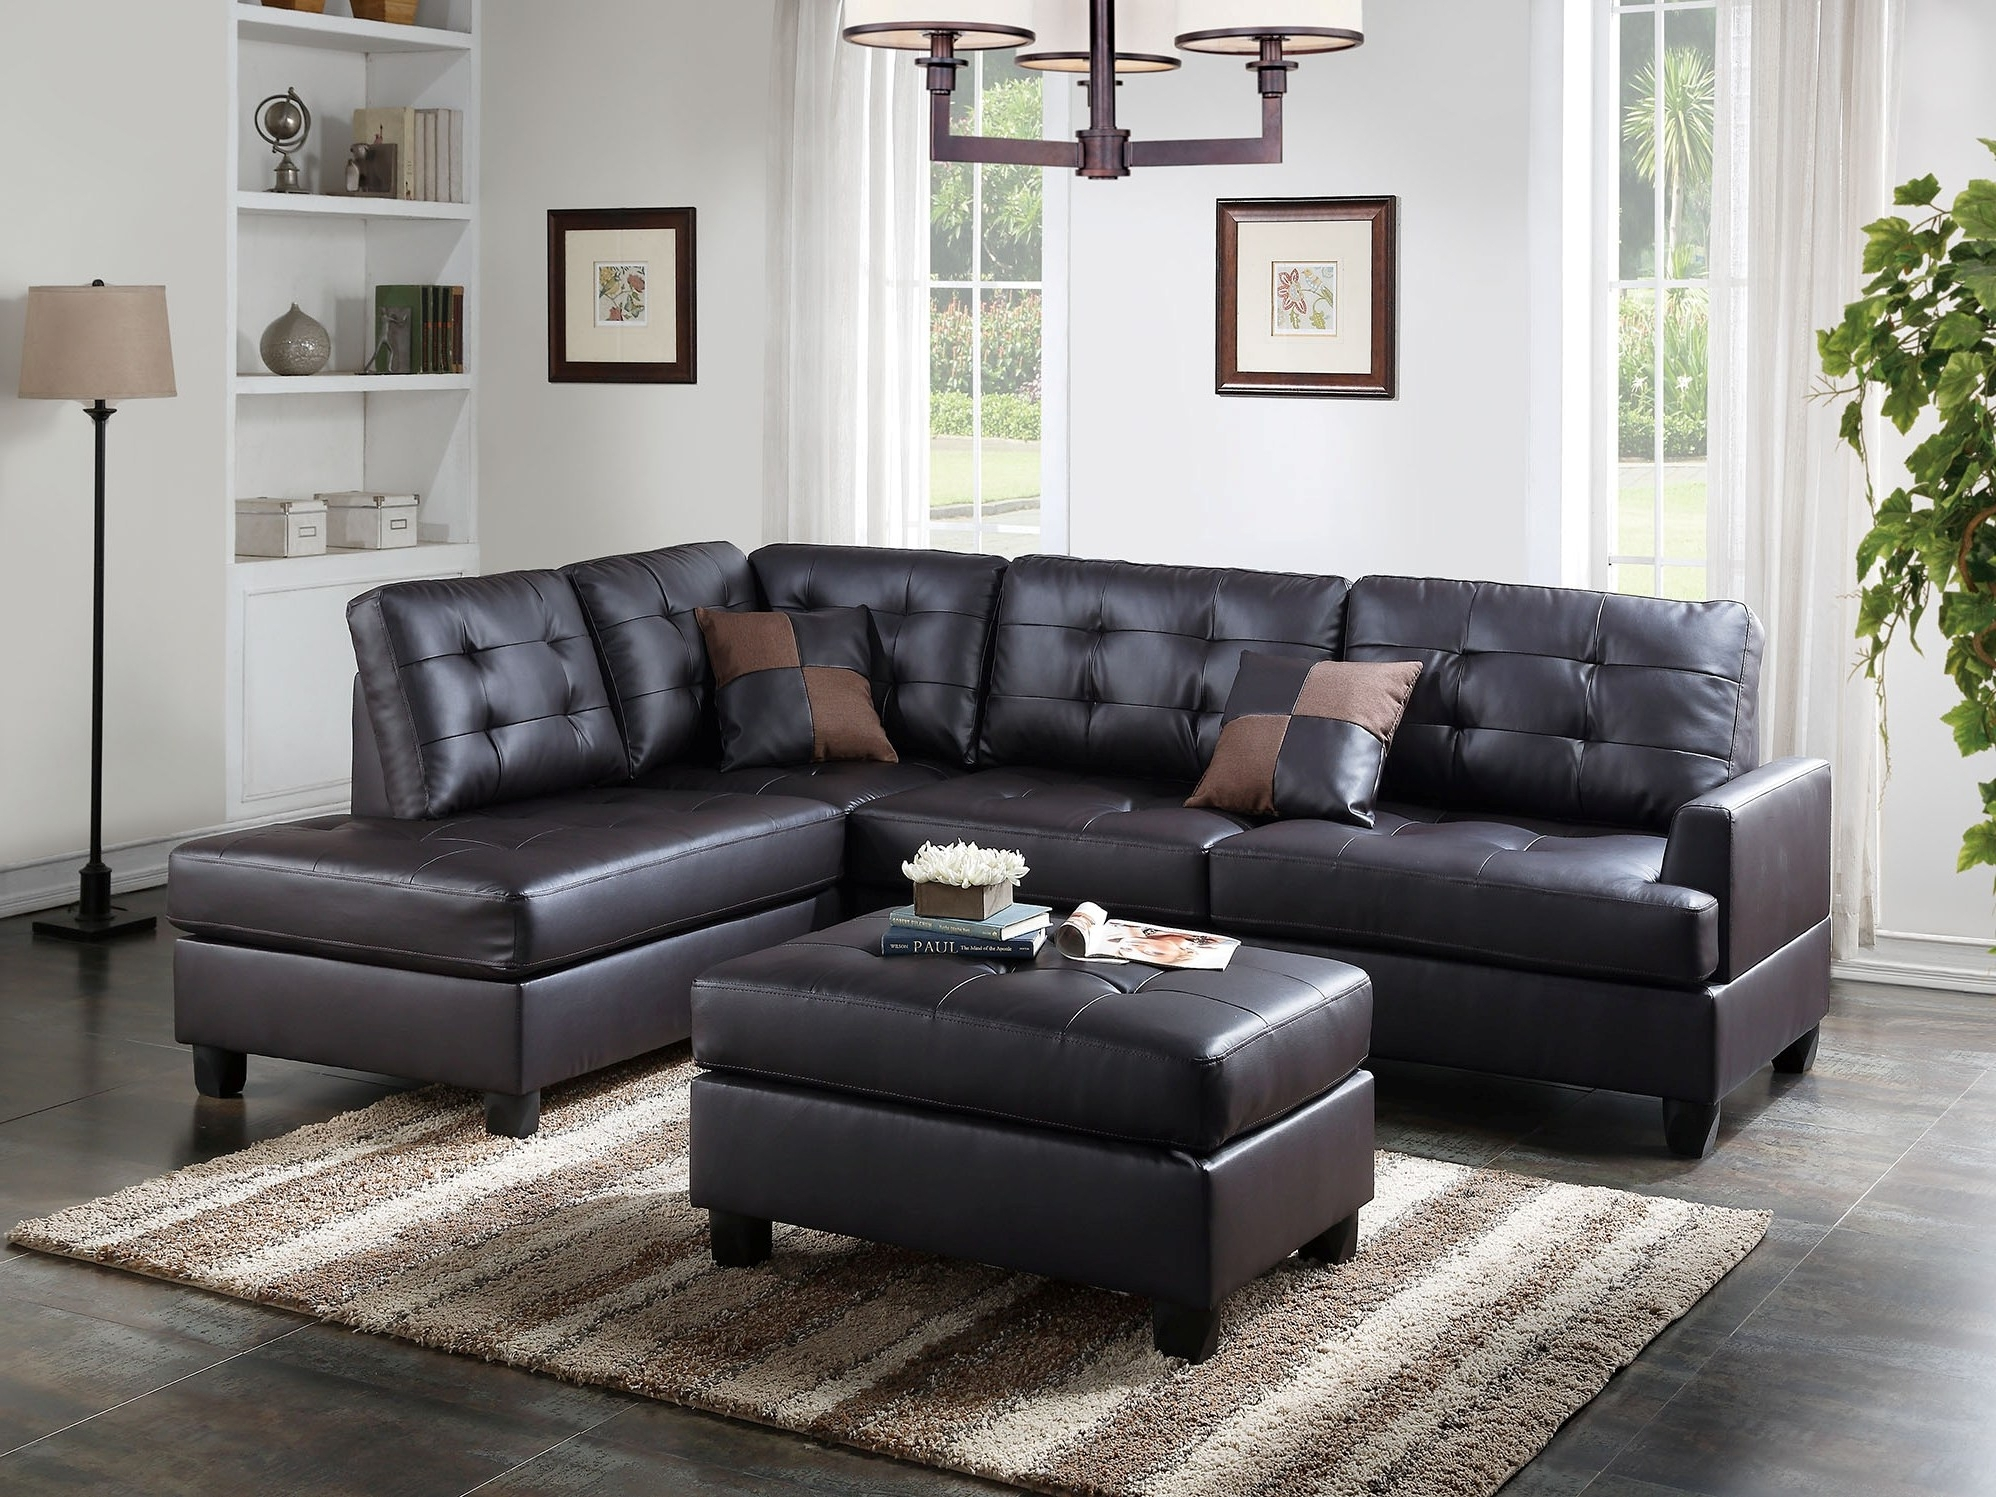 Pconal Sofa With Chaise Storage And Ottoman 3Pcs Set Carpenter Throughout Fashionable Kanes Sectional Sofas (View 13 of 20)